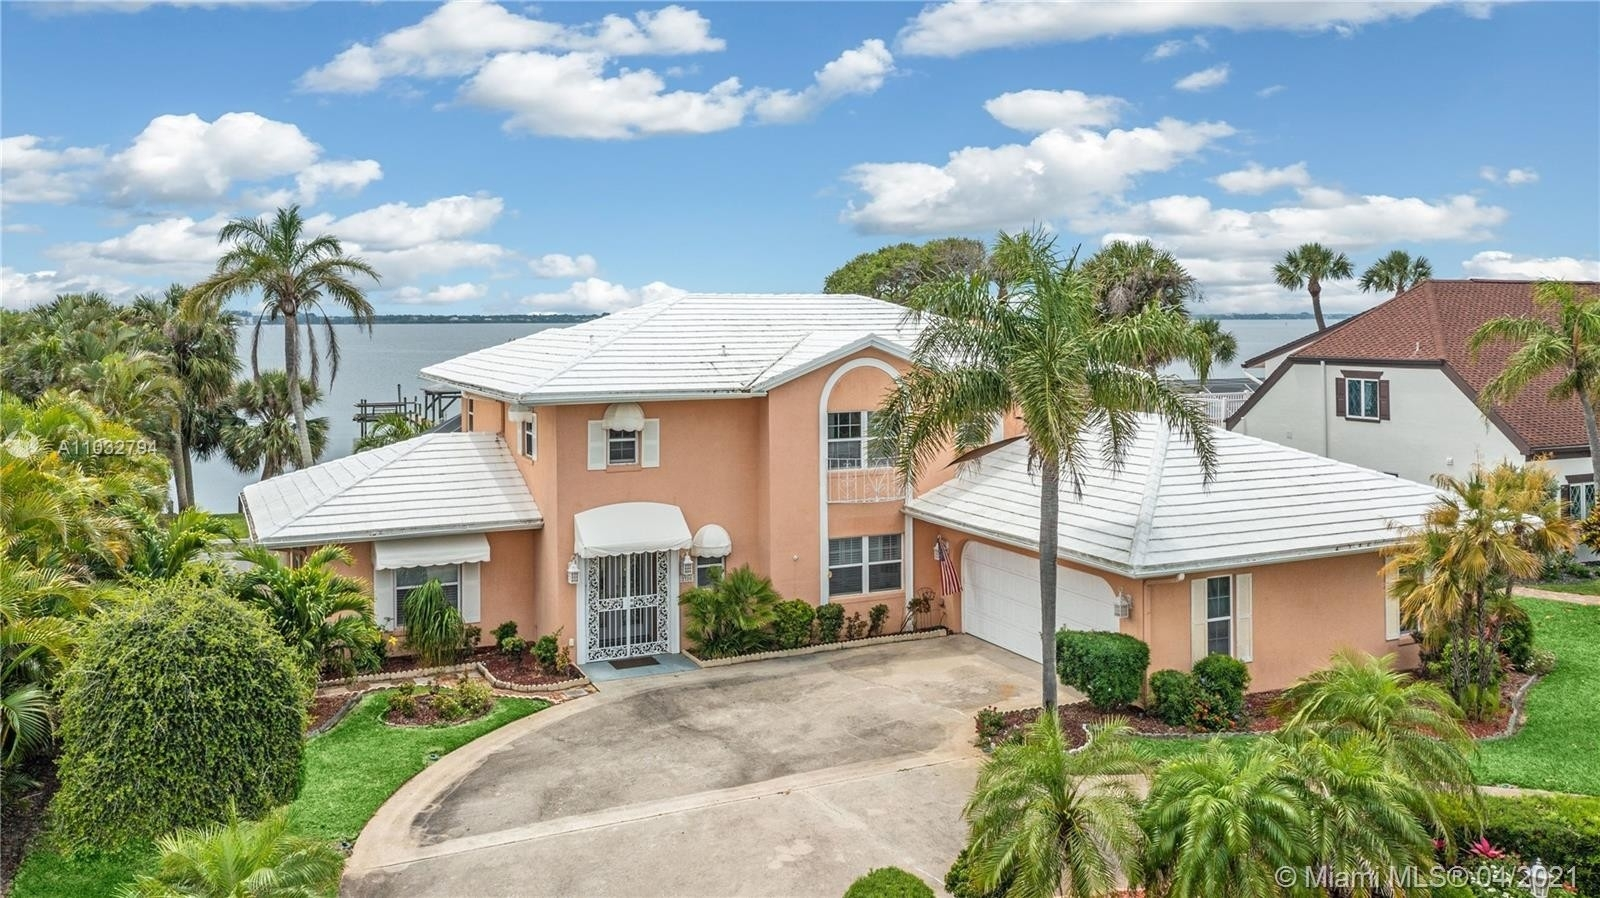 Single Family Home for Sale at Melbourne Beach, FL 32951